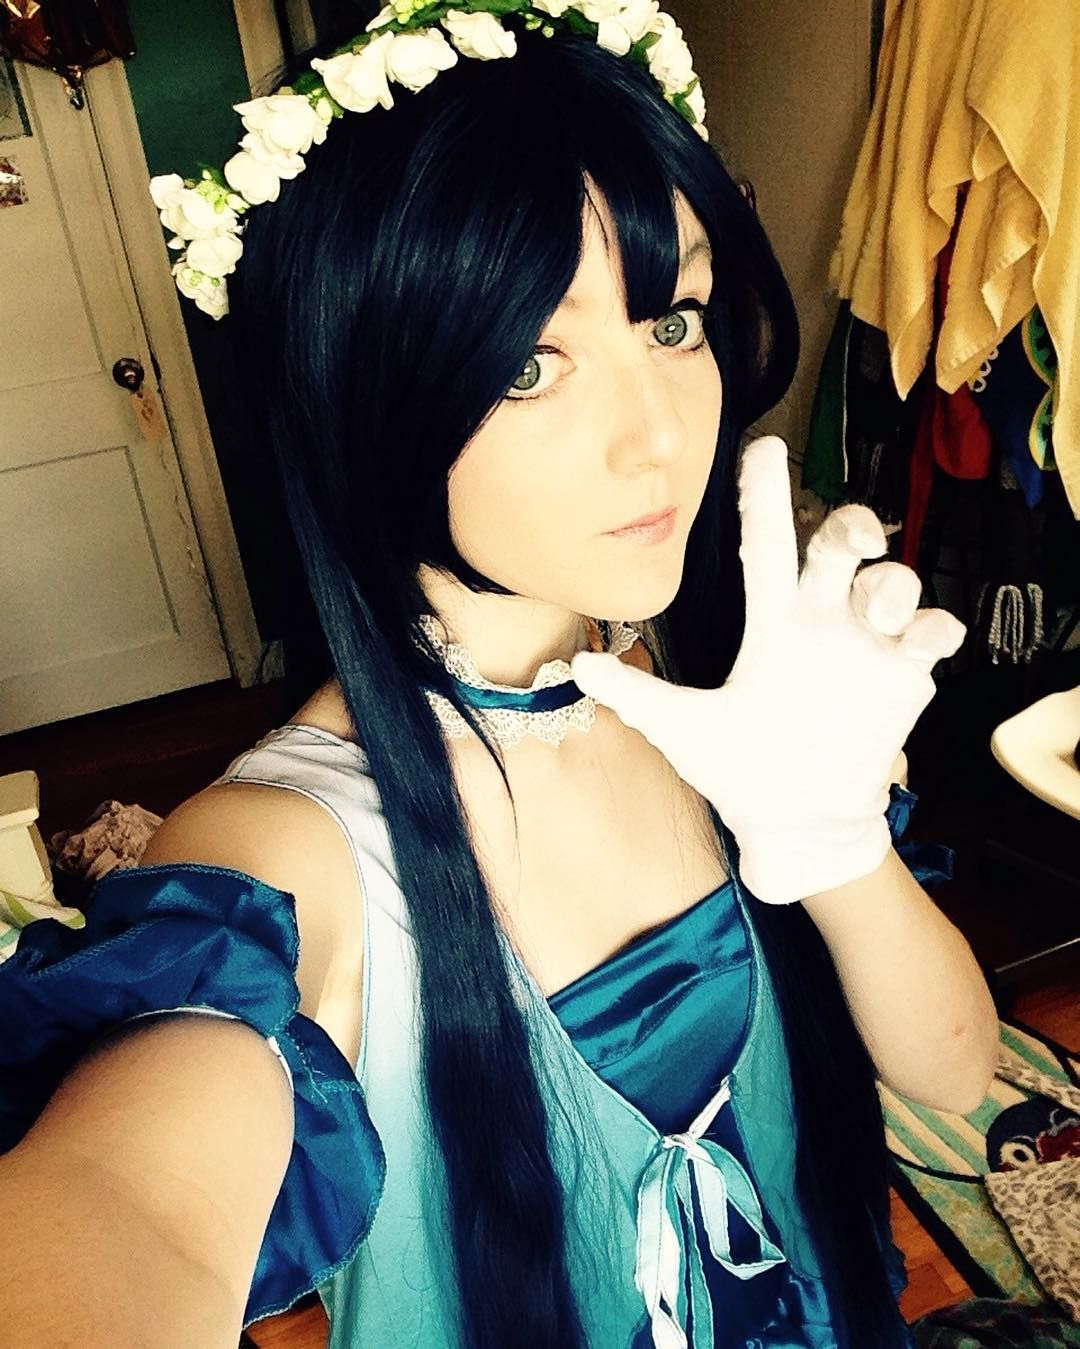 So twenty people liked the last post so at some point you'll get to see my chicken scratch..yay? - -  #cosplay #anime #animecosplay #lovelive #loveliveschoolidolproject #loveliveschoolidolfestival #umi #umisonoda #lovelivecosplay #loveliveschoolidolprojectcosplay #loveliveschoolidolfestivalcosplay #umicosplay #umisonodacosplay #manga